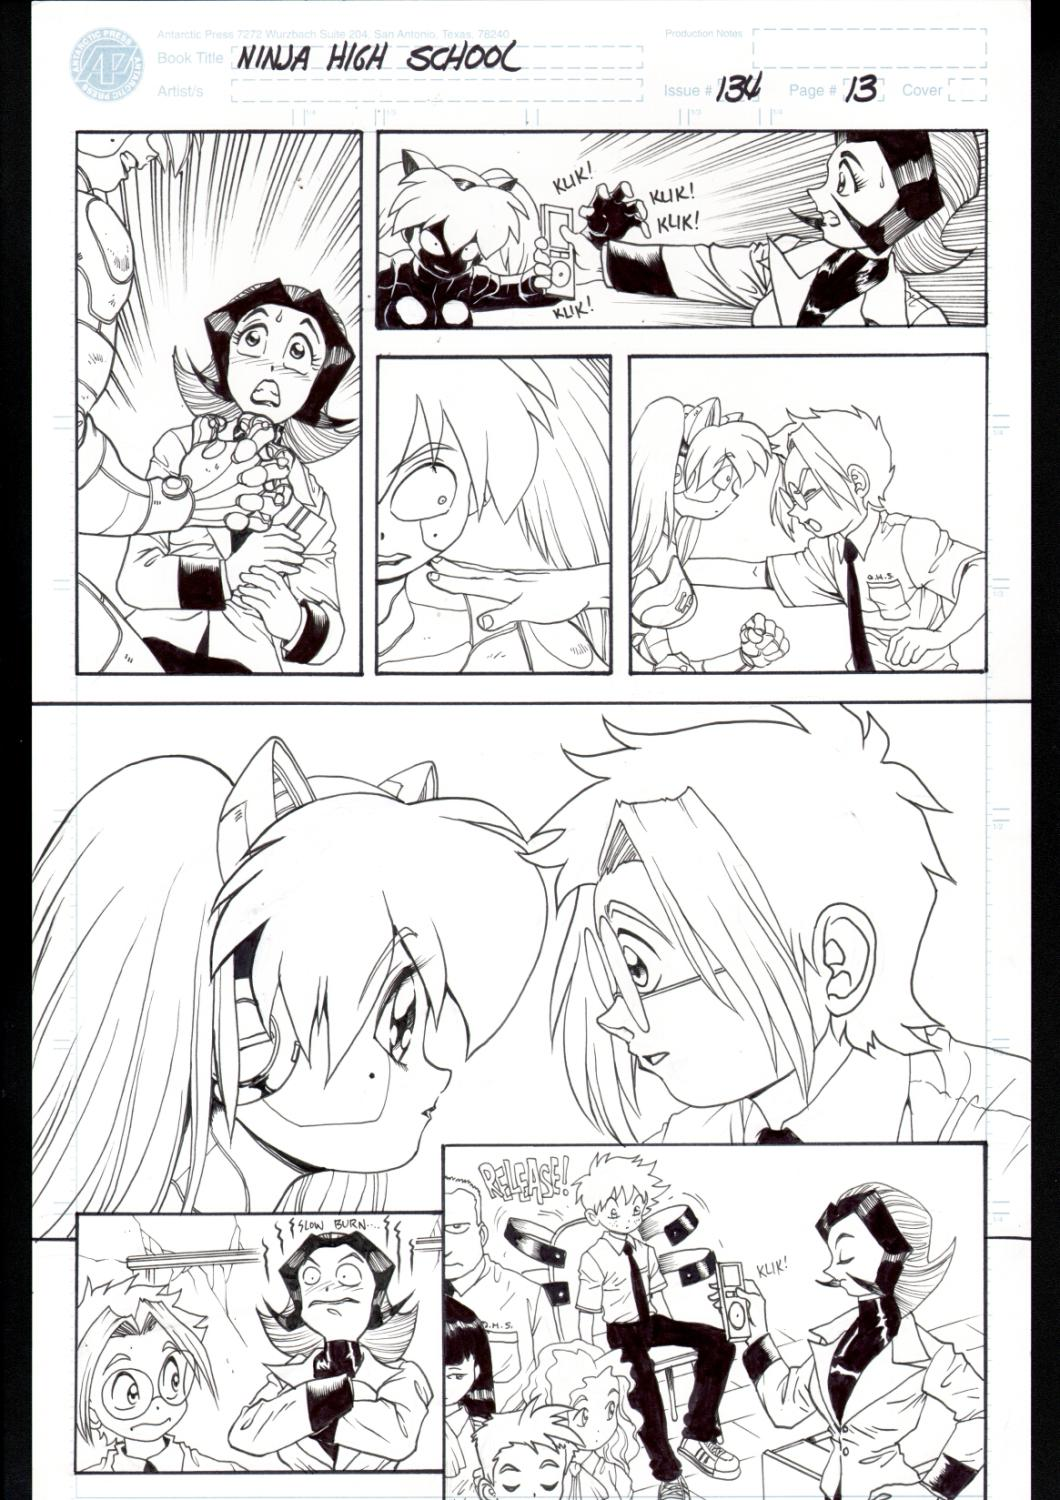 Ninja High School 134 Pg 13 Original Art Ben Dunn Anime